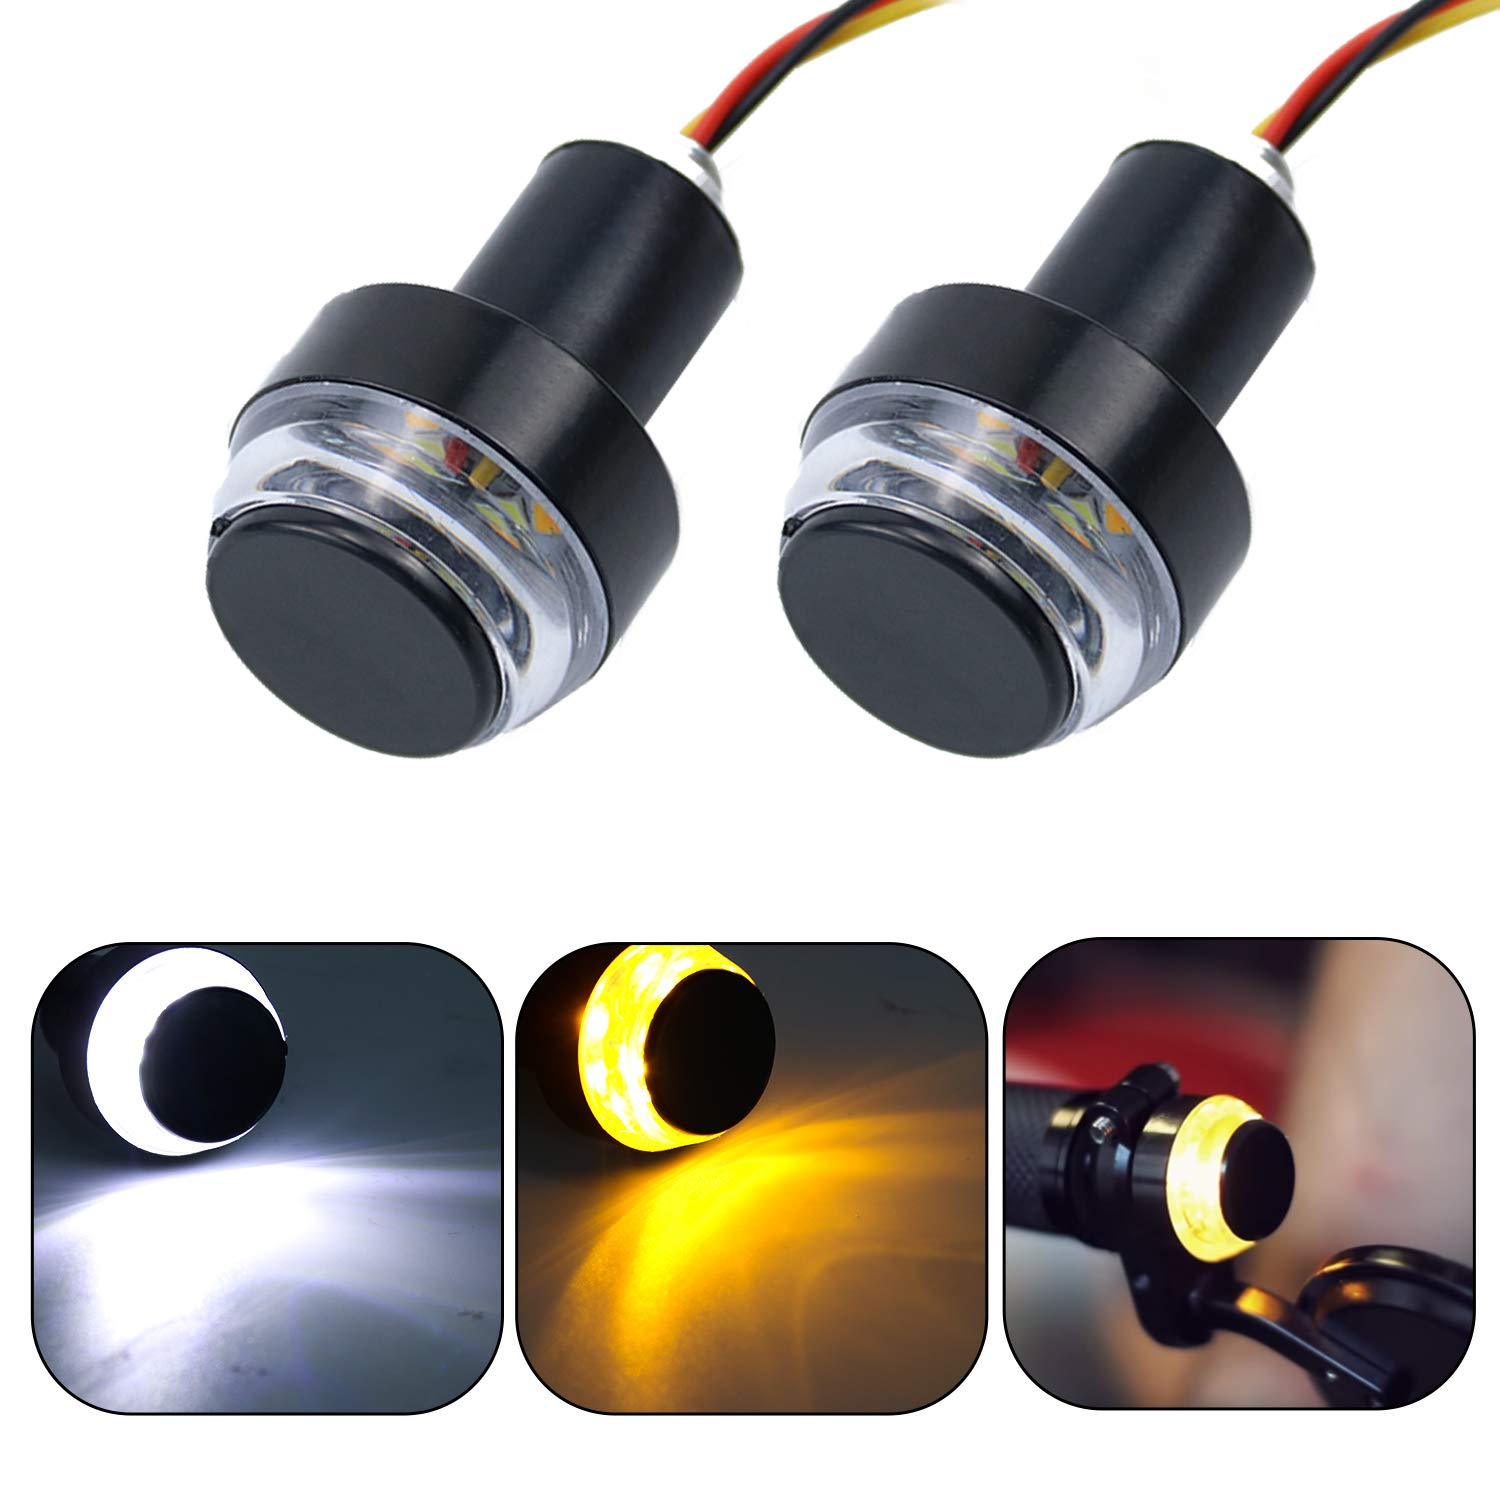 LivTee Motorcycle Handlebar End LED Lights, Dual Color for Turn Signal Lights and Side Marker Lights or Running Lights, Amber/White